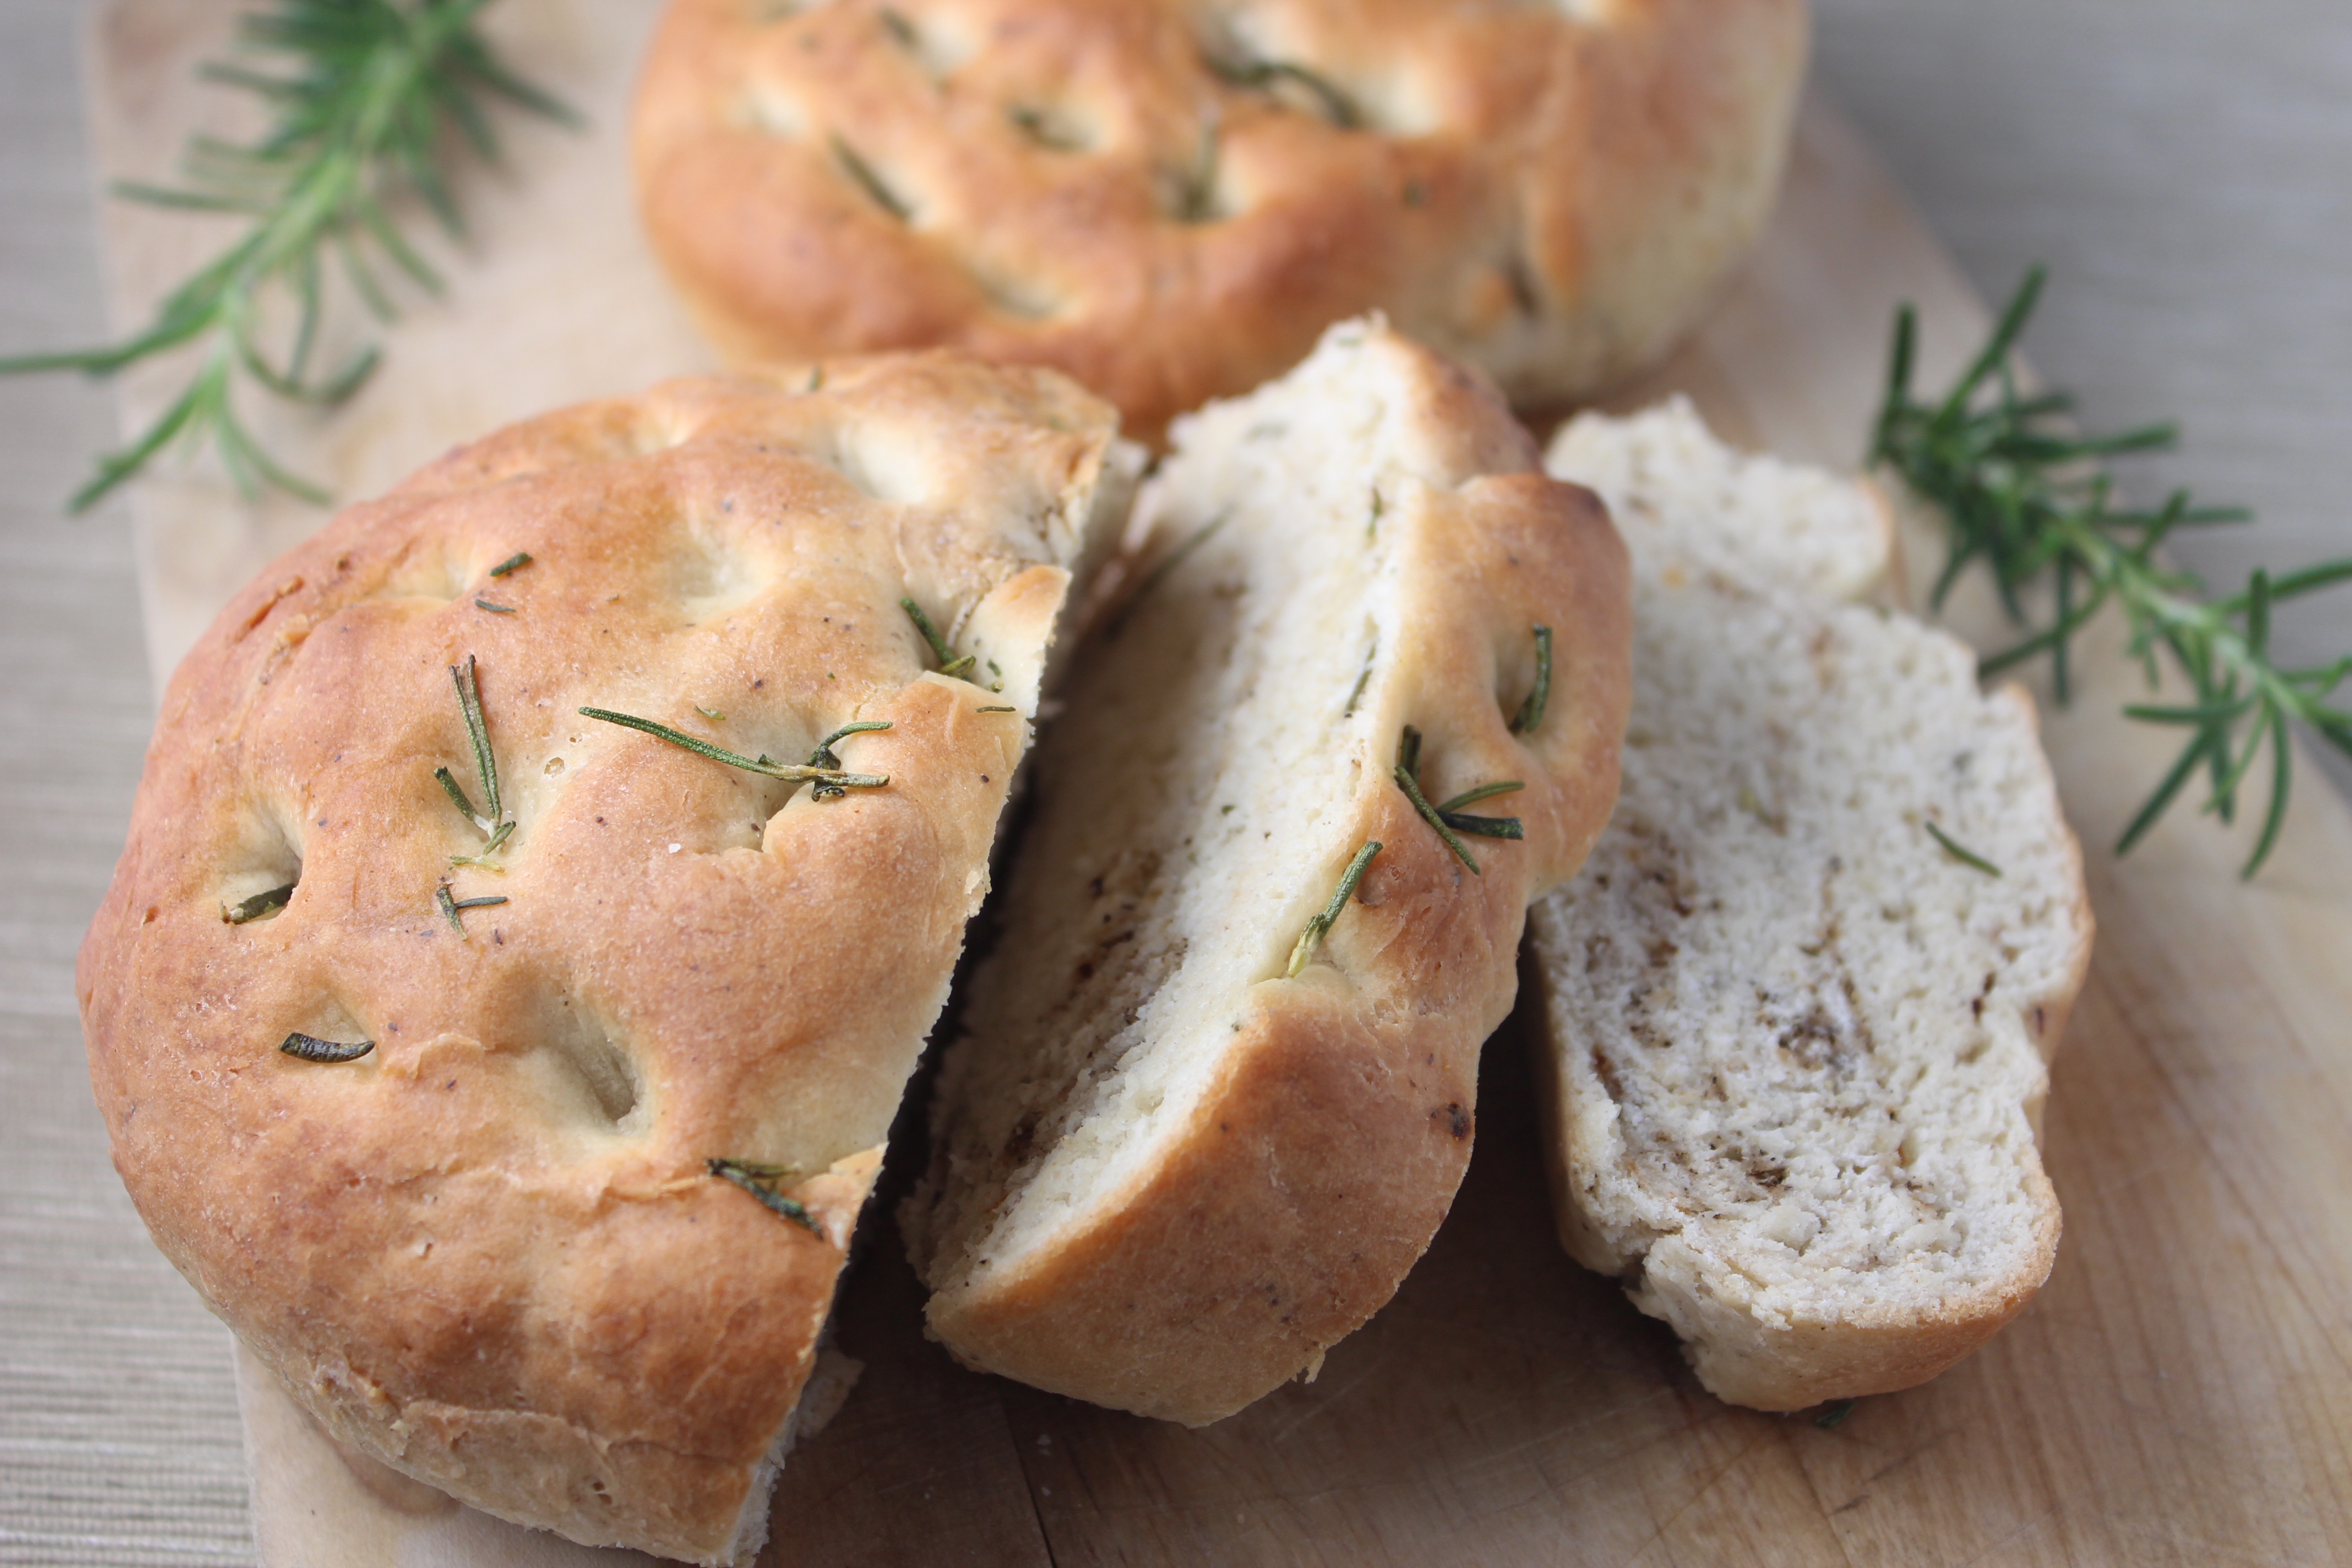 rosemary bread, focaccia bread, rosemary focaccia bread, easy bread recipe, simple focaccia bread recipe, recipes, homemade focaccia bread